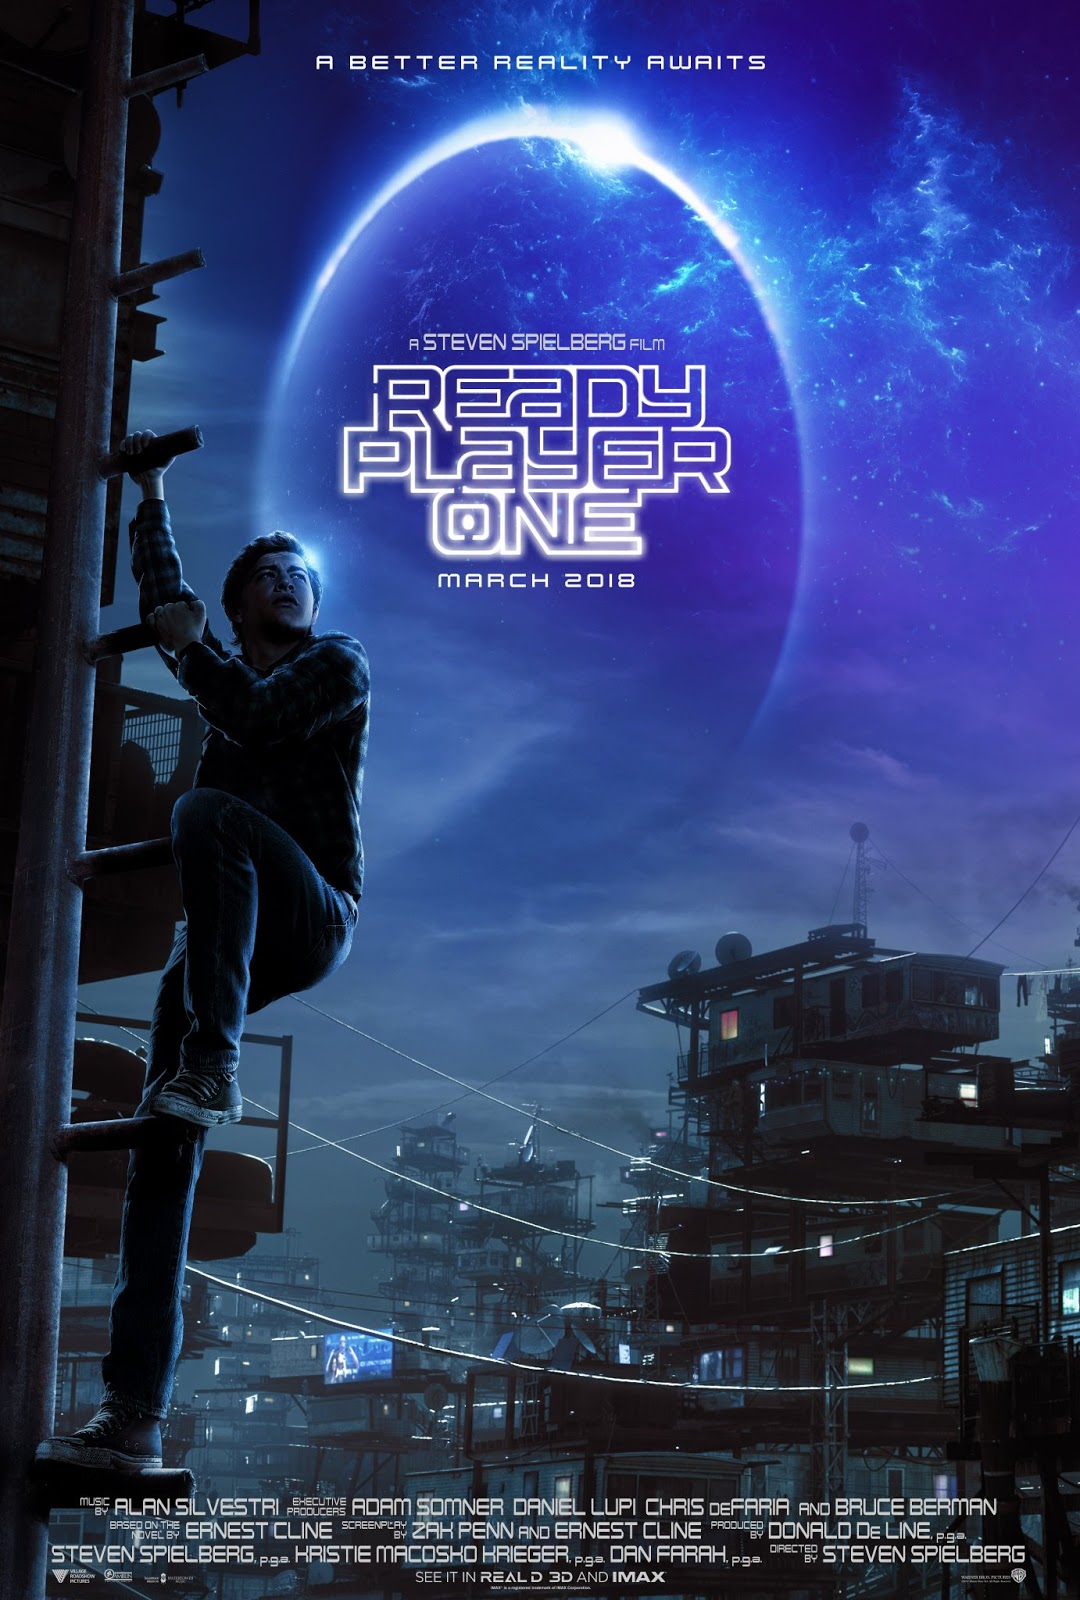 But Then Again Nothing Could Necessarily Justify The Elongated Right Leg Seen In Movie Poster Maybe They Were Paying Homage To Mr Fantastic Of